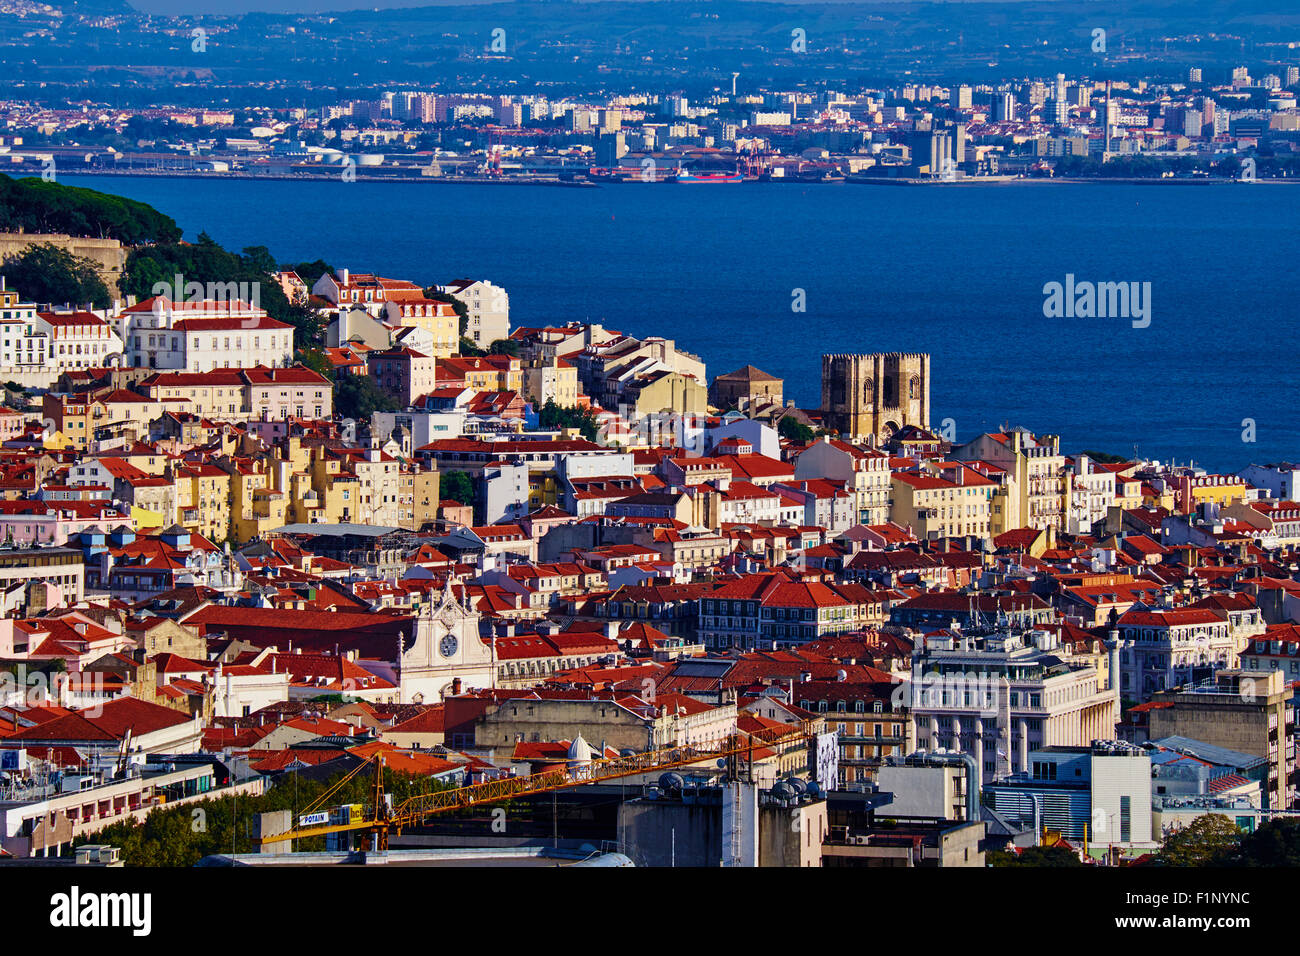 Portugal, Lisbon, Alfama and Sé Cathedral - Stock Image